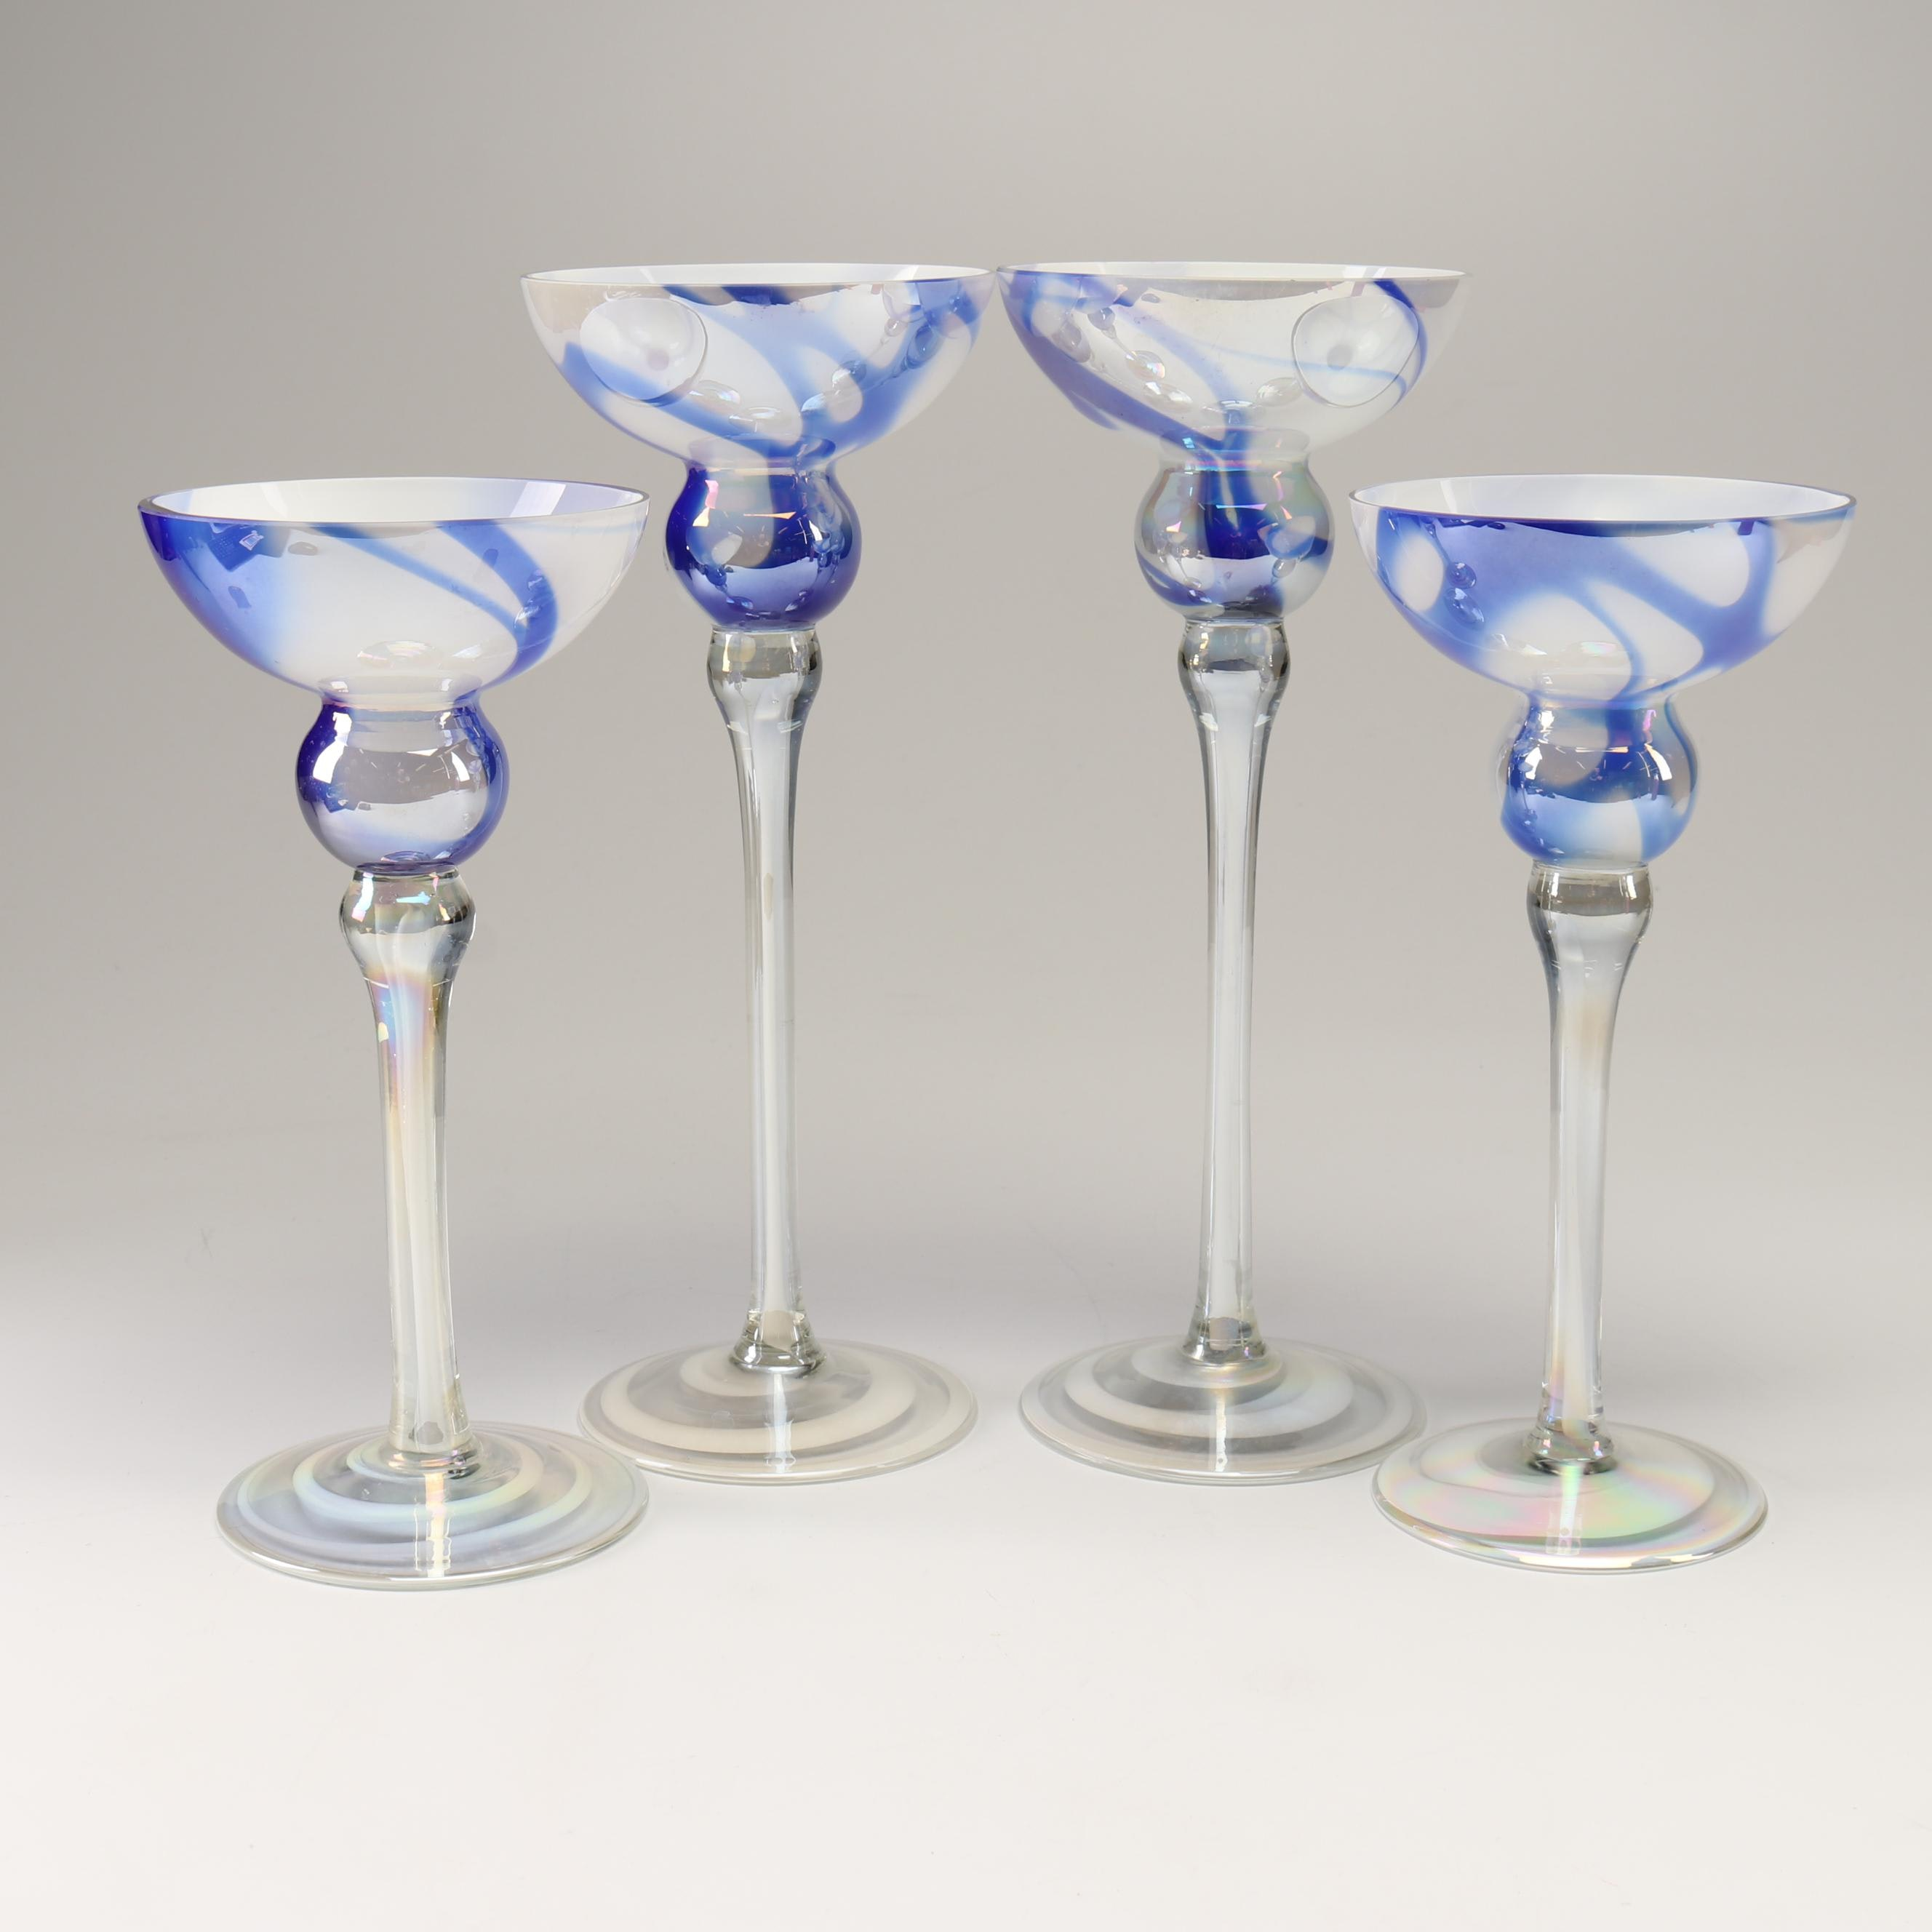 Contemporary Art Glass Candleholders